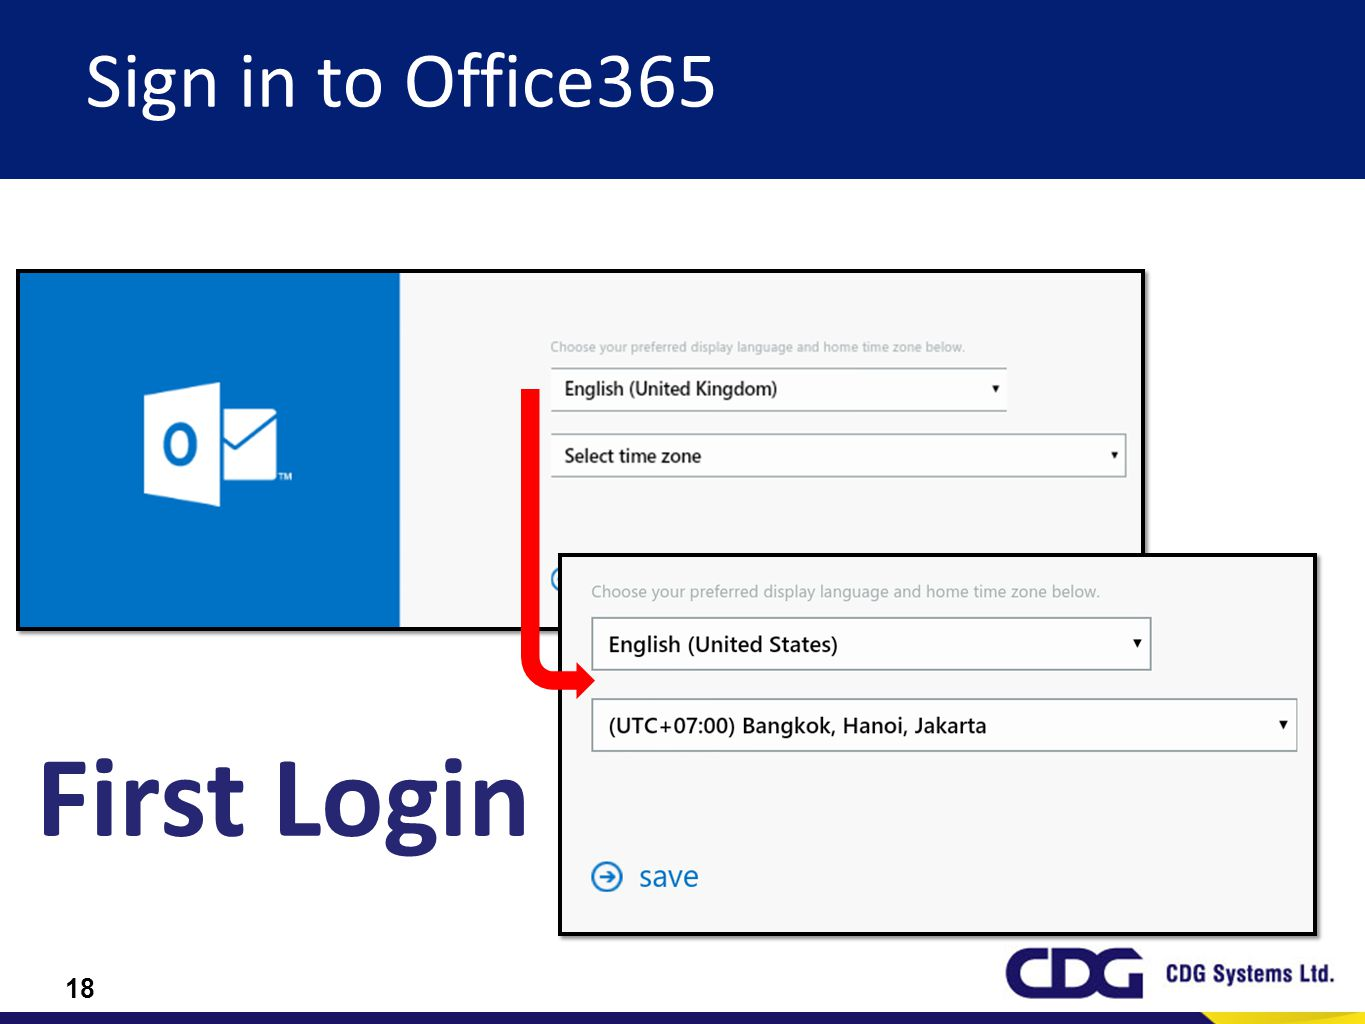 Sign in to Office365 First Login